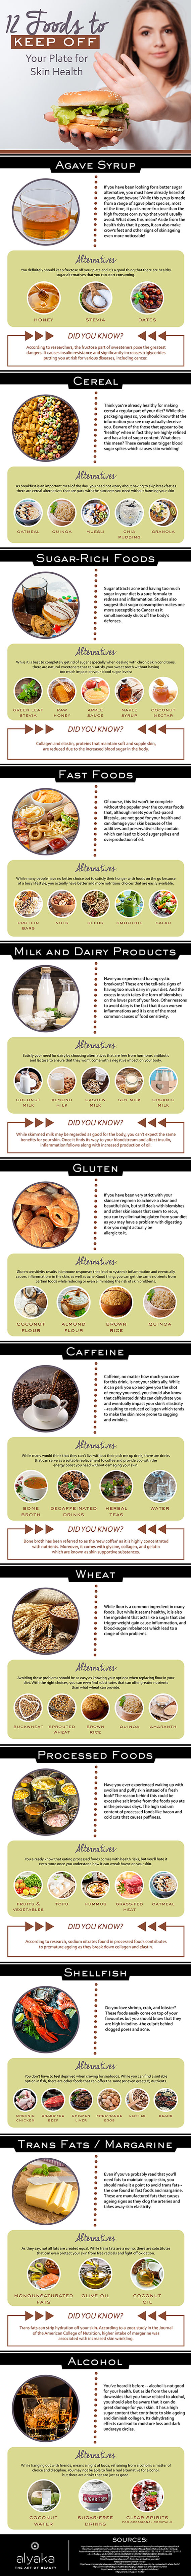 Food that are Bad for the Skin